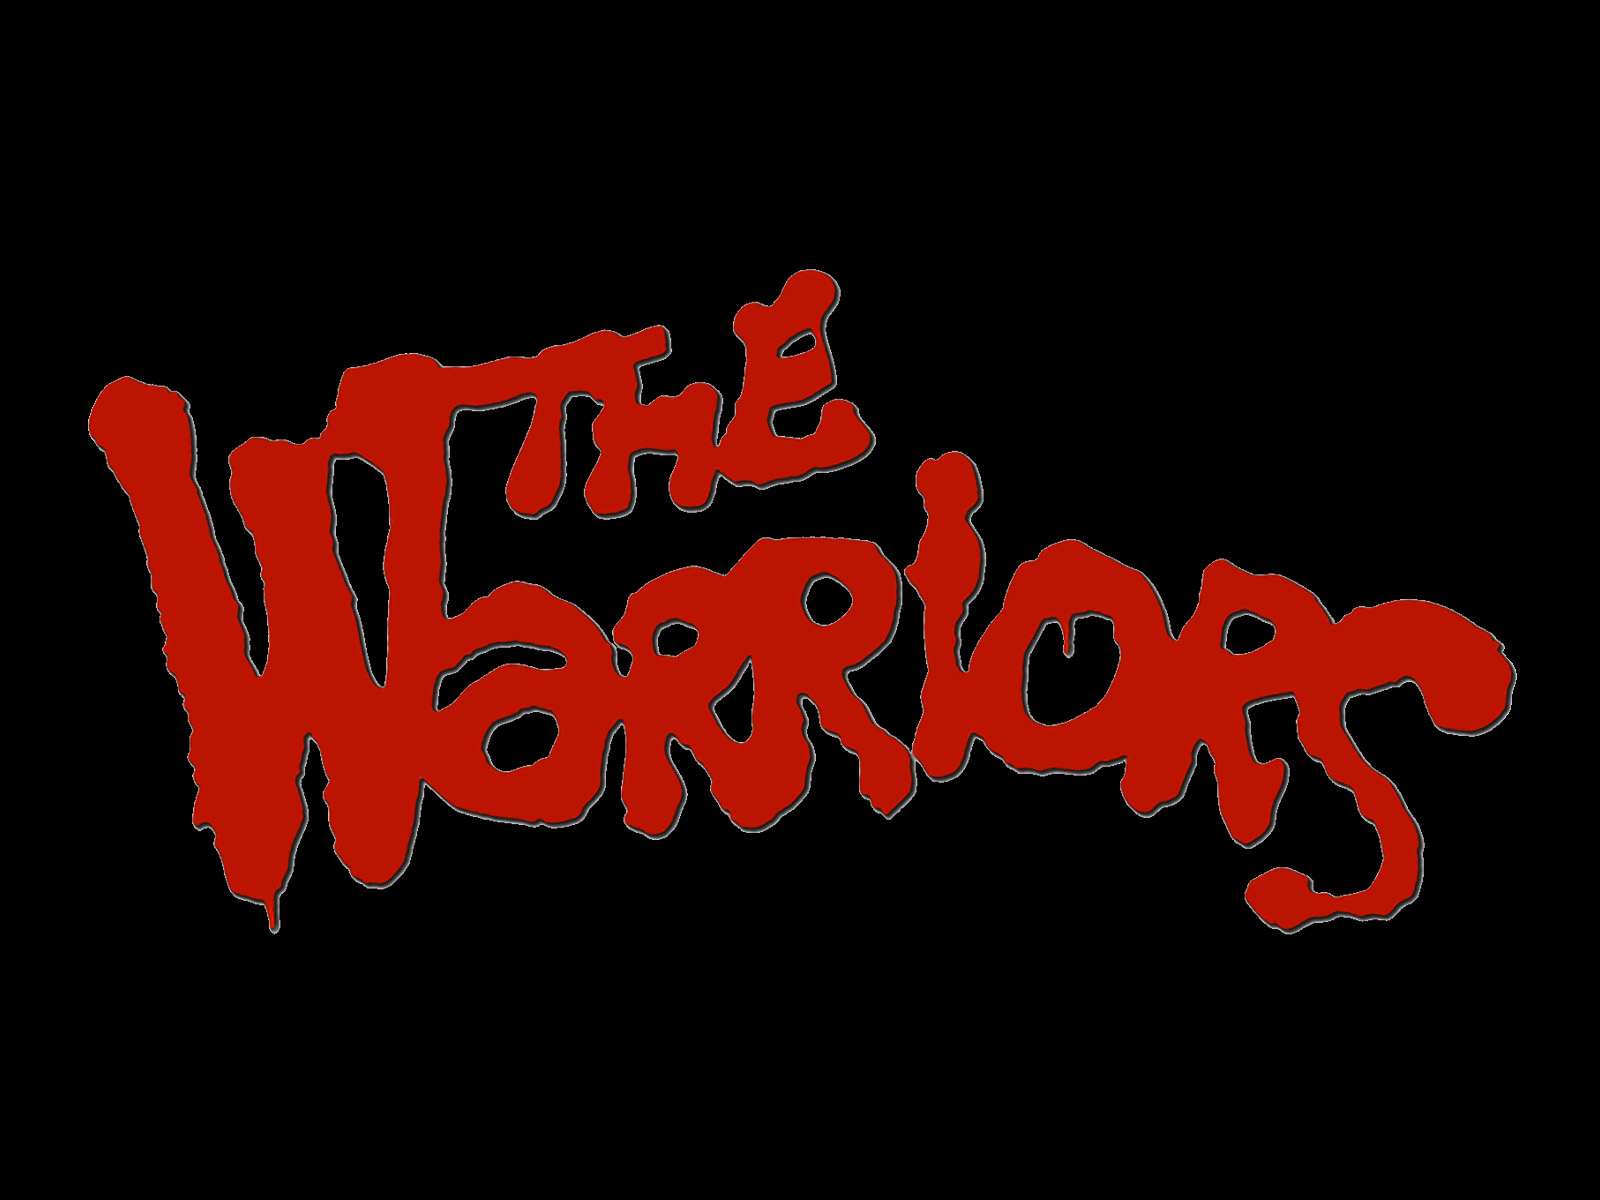 THE WARRIORS ウォリアーズ – Official Movie T-shirts